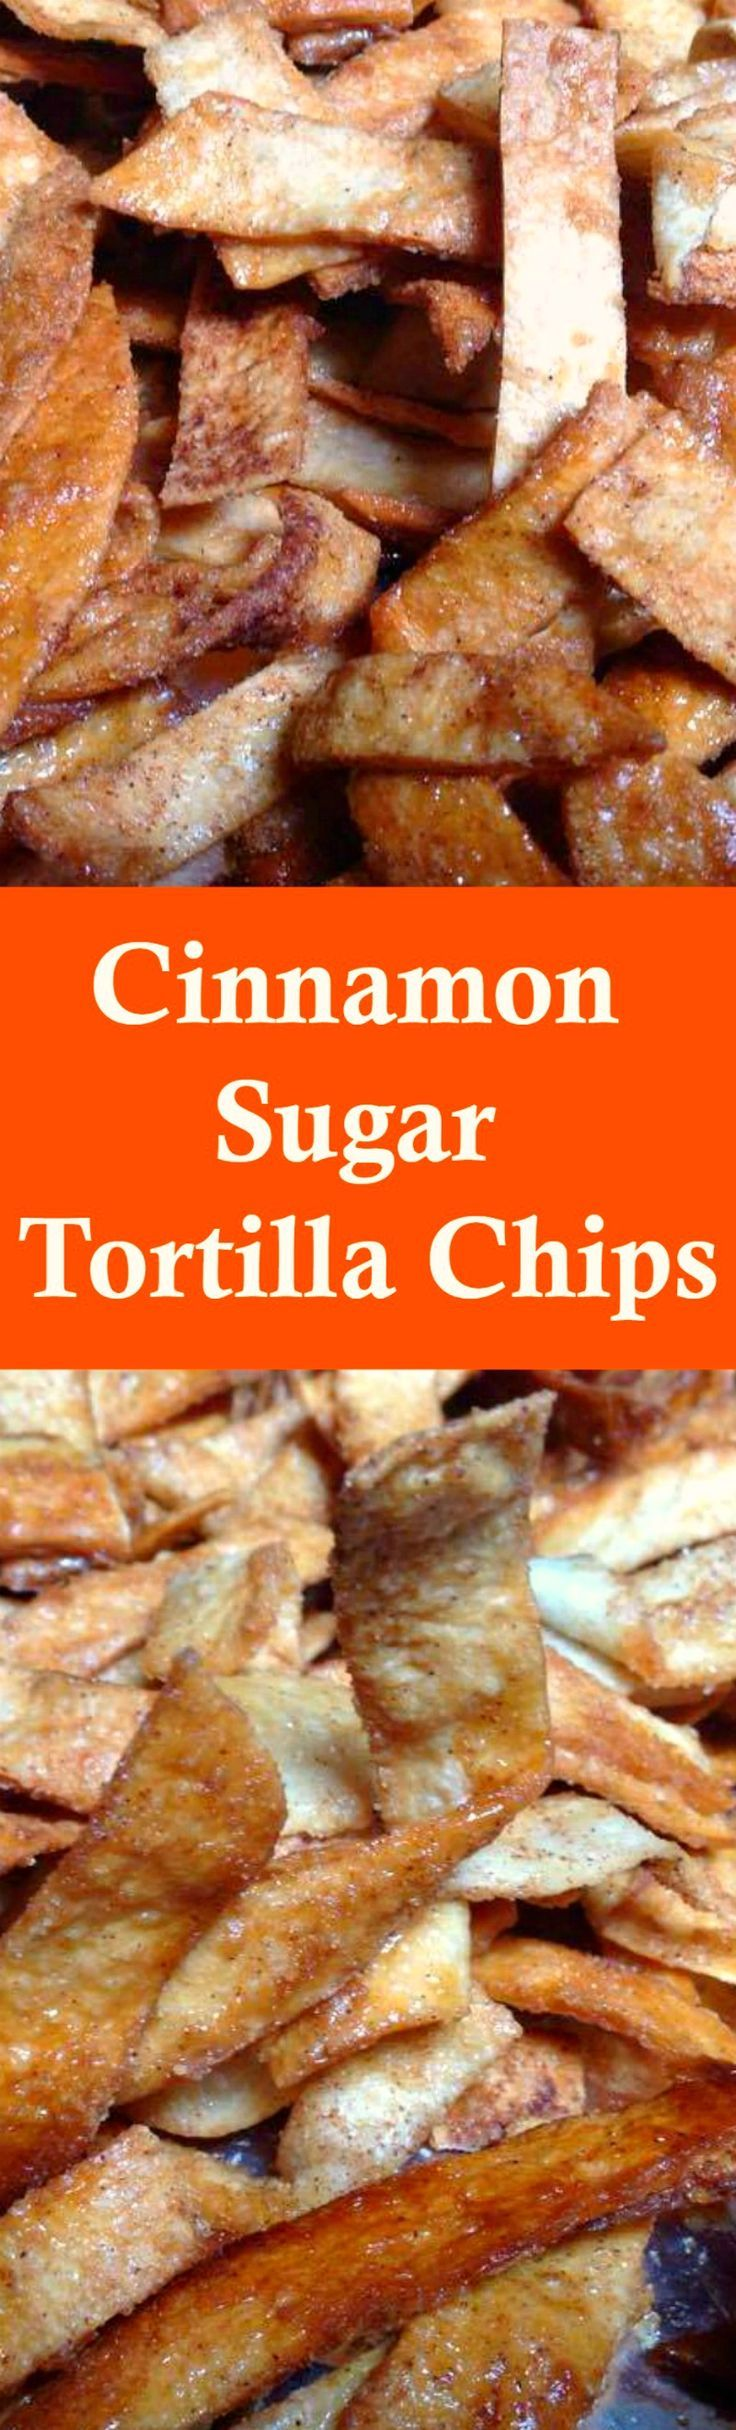 Cinnamon Sugar Tortilla Chips! So good! | http://Lovefoodies.com